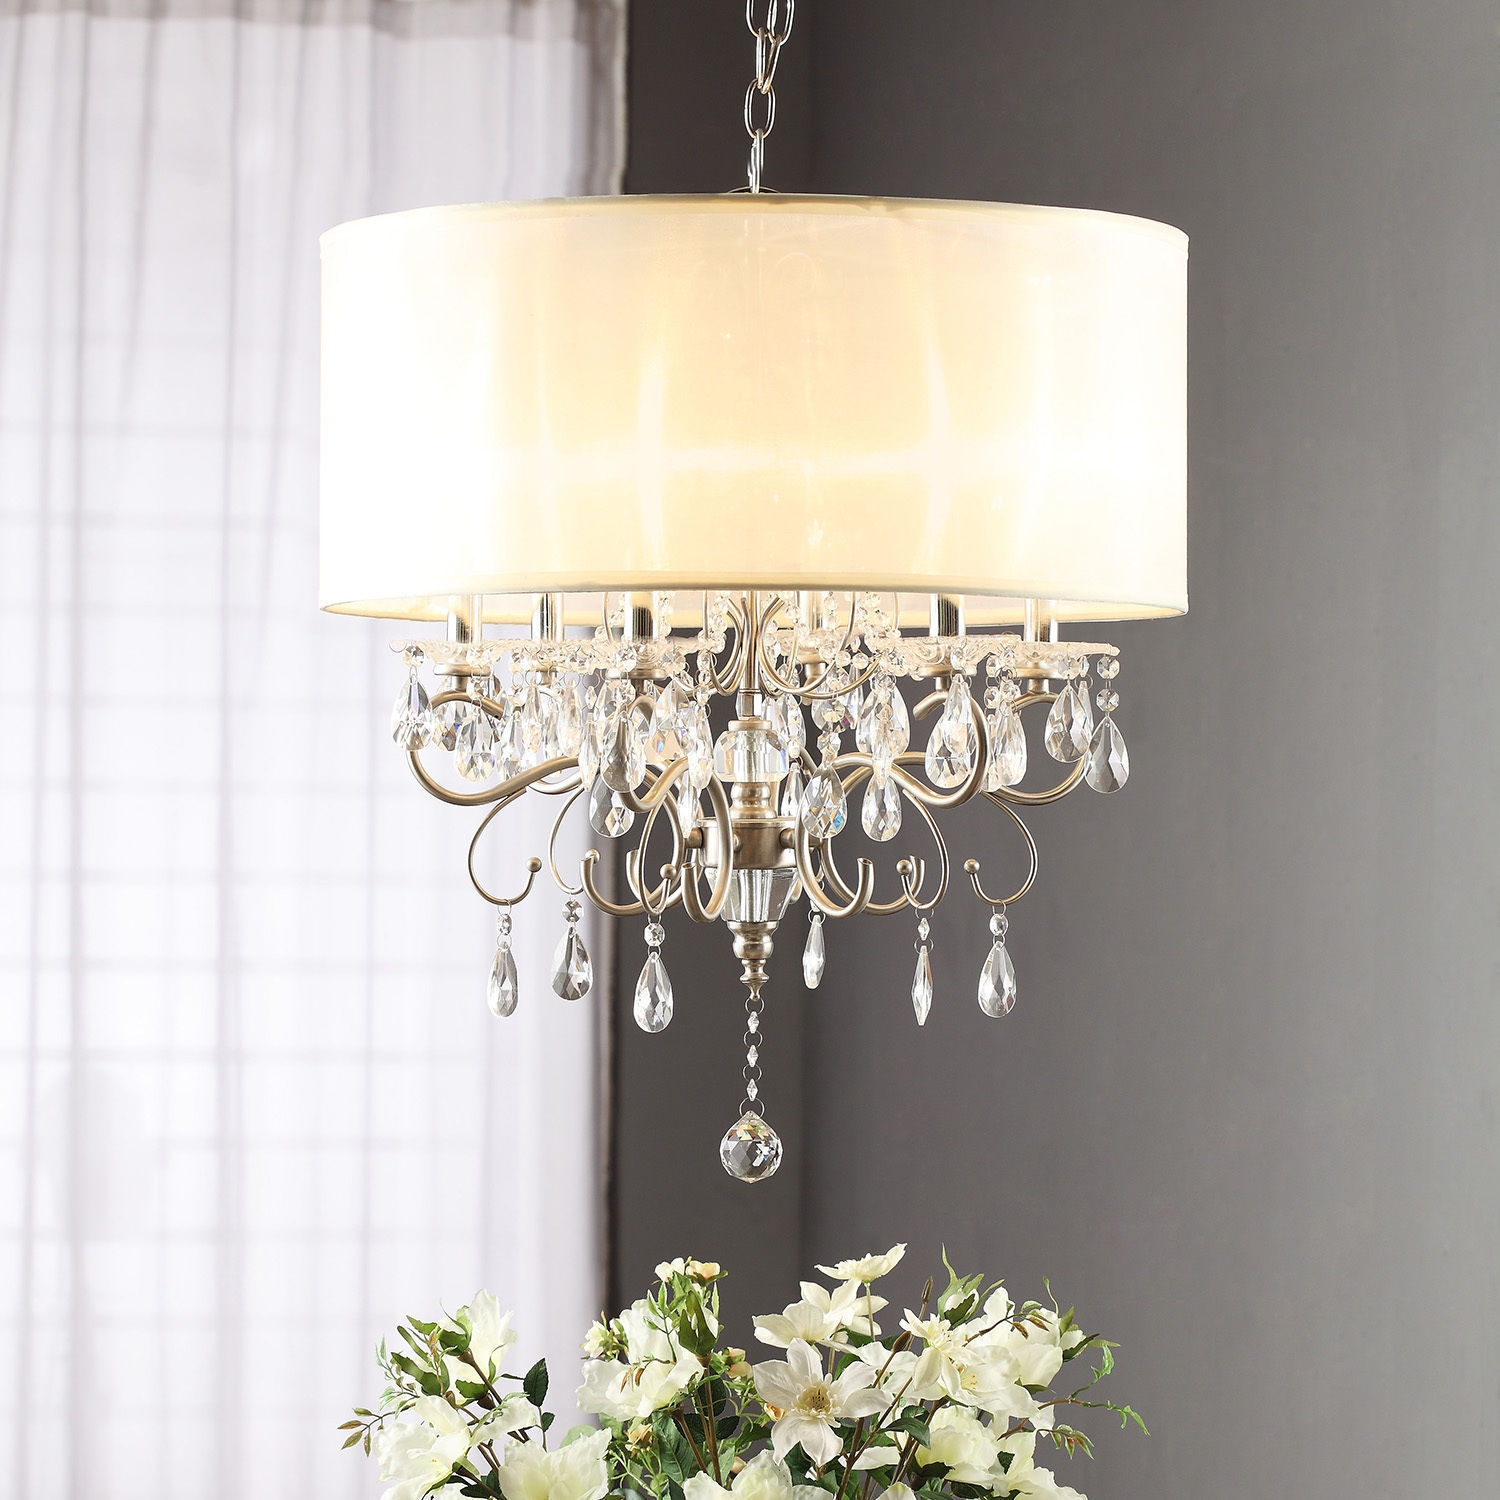 Top 10 Chandeliers Ebay With Cream Crystal Chandelier (#12 of 12)